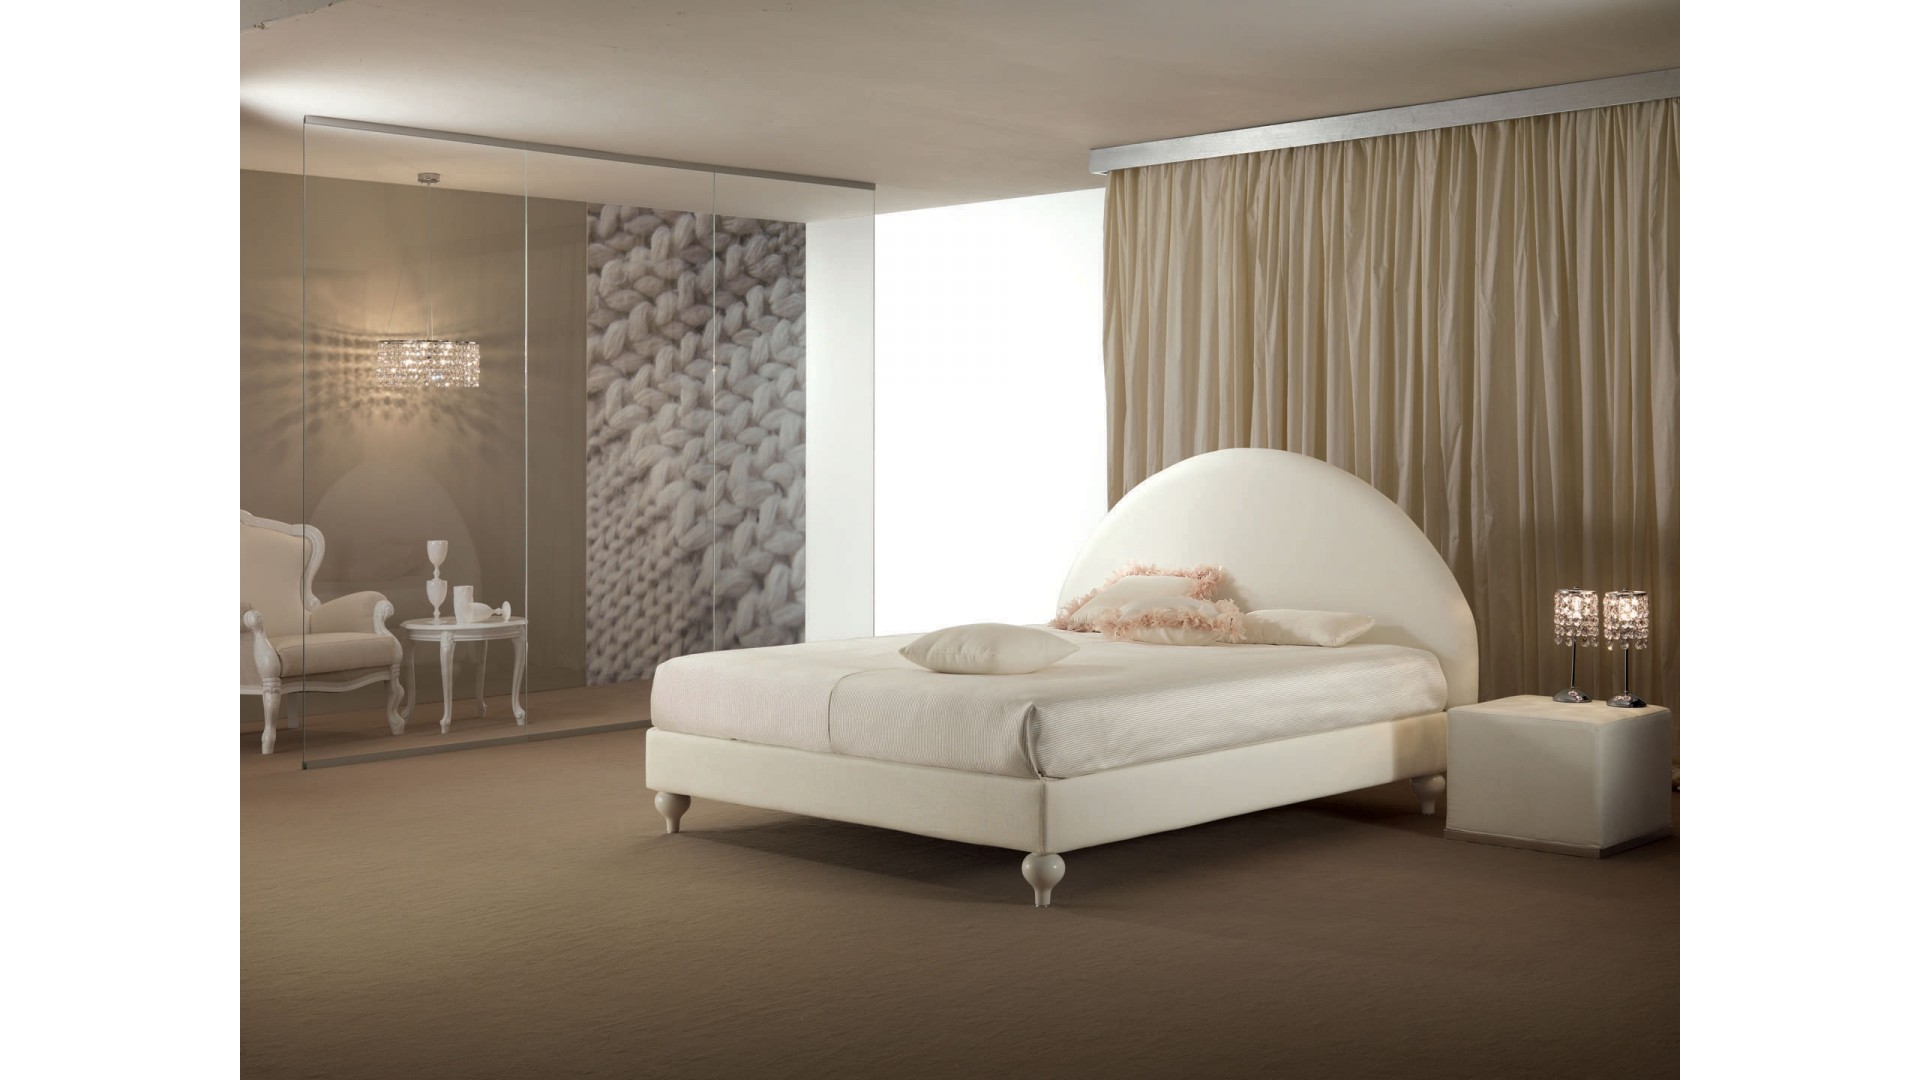 lit double nuvola l avec t te de lit arrondie piermaria so nuit. Black Bedroom Furniture Sets. Home Design Ideas